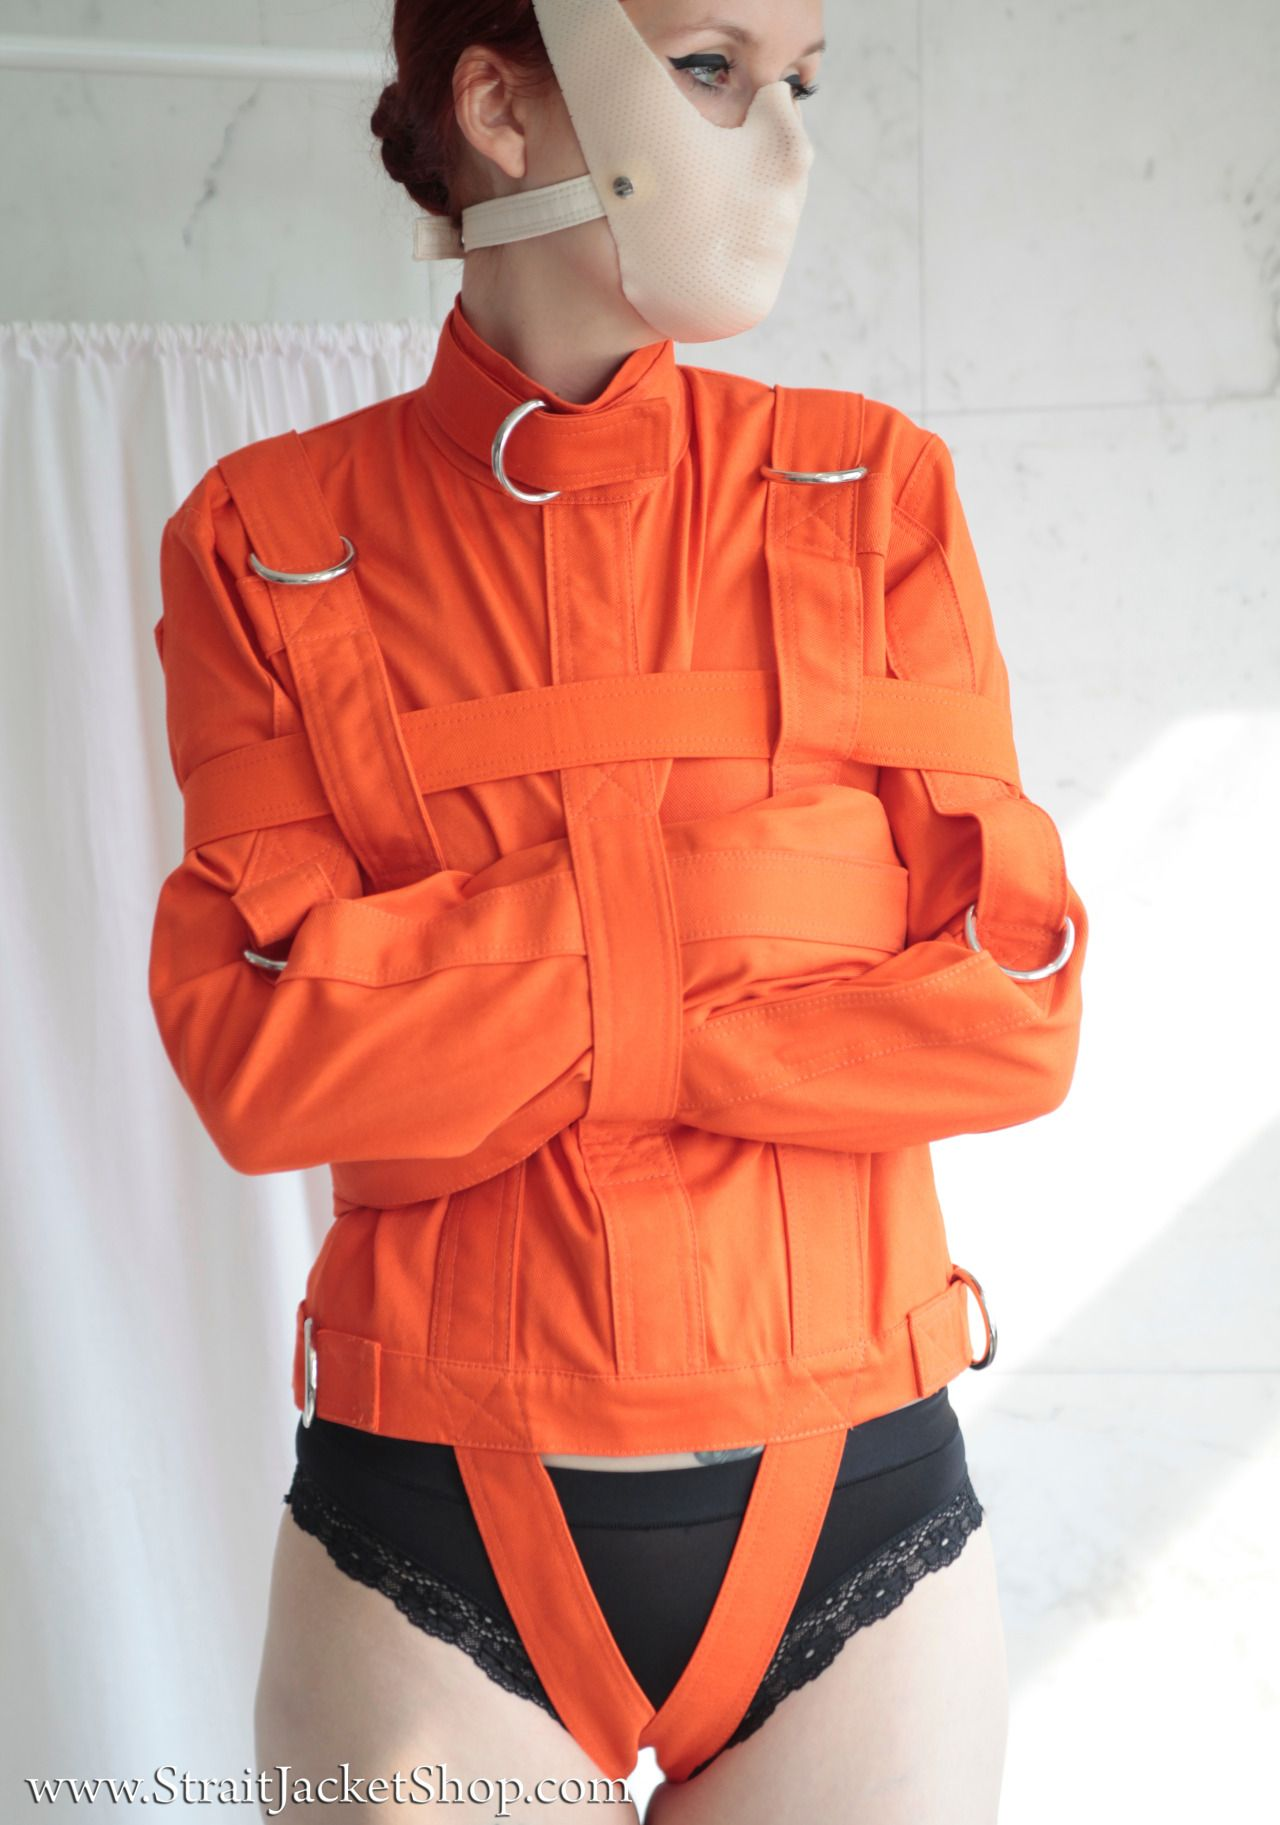 Woman In Her Stylish Orange Straitjacket (Not A Toy) With